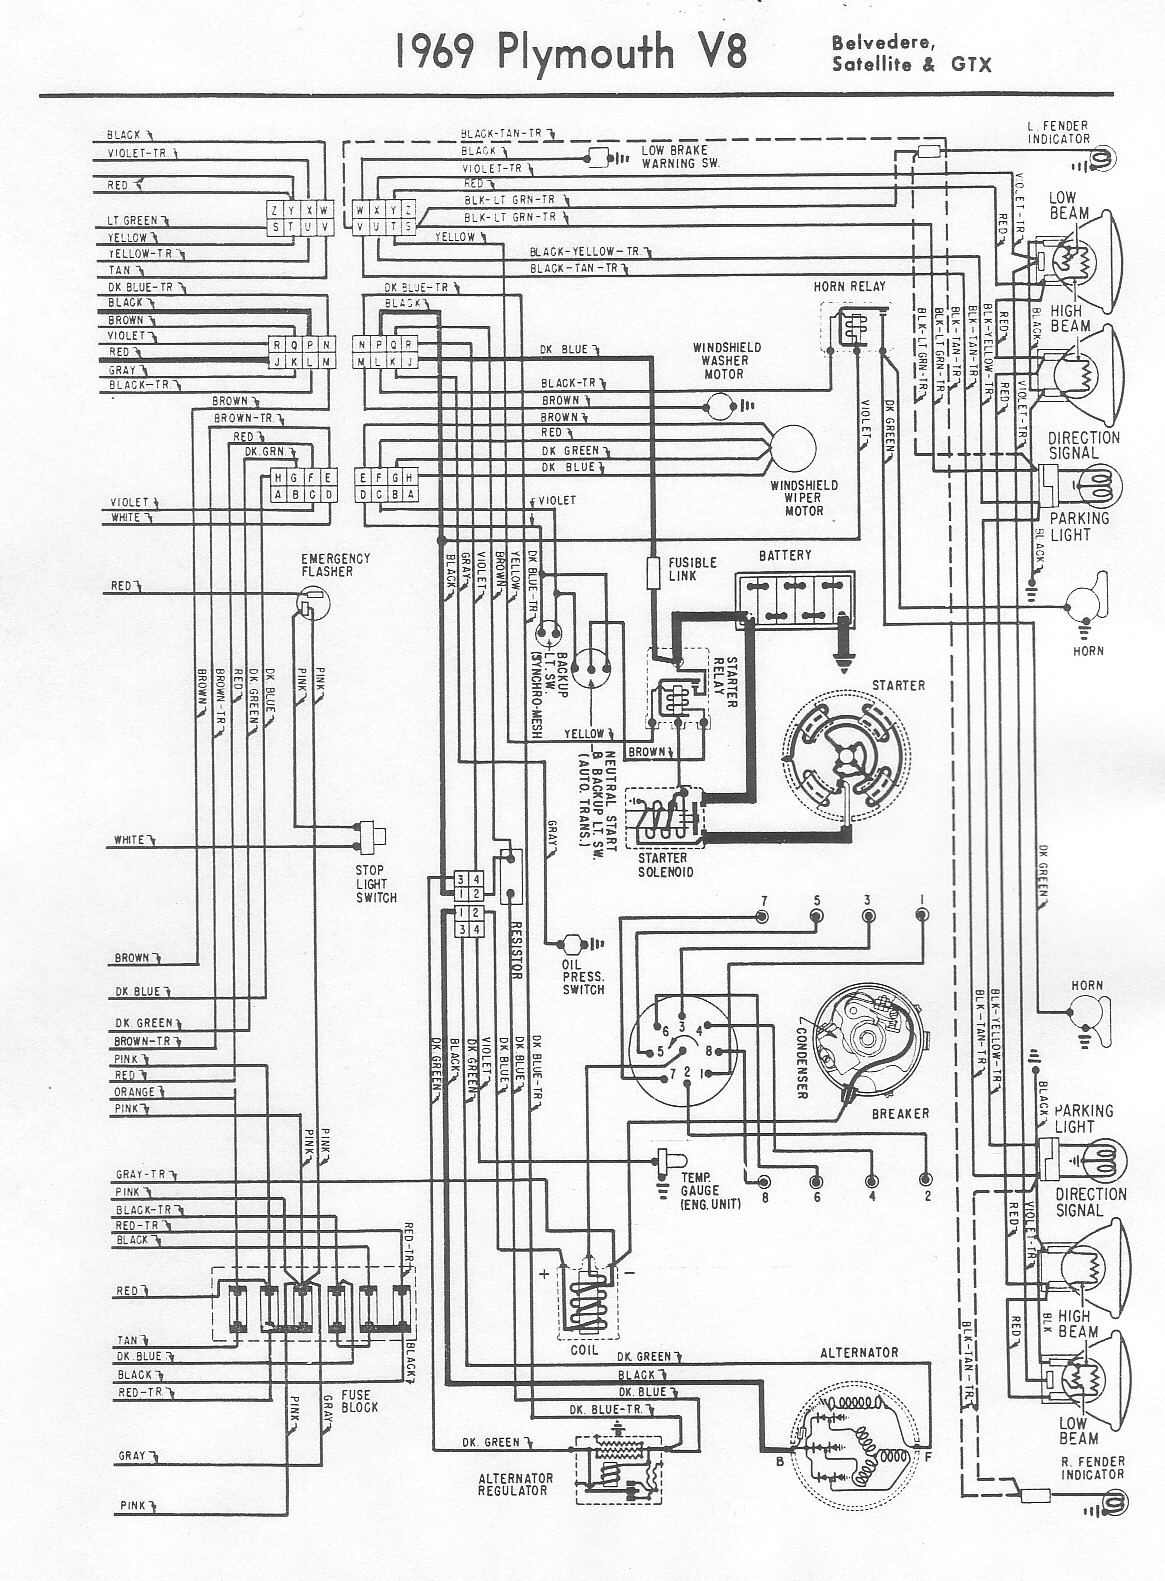 Belvederegtxsatelliteroadrunnerb on 1968 Dodge Charging System Wiring Diagram